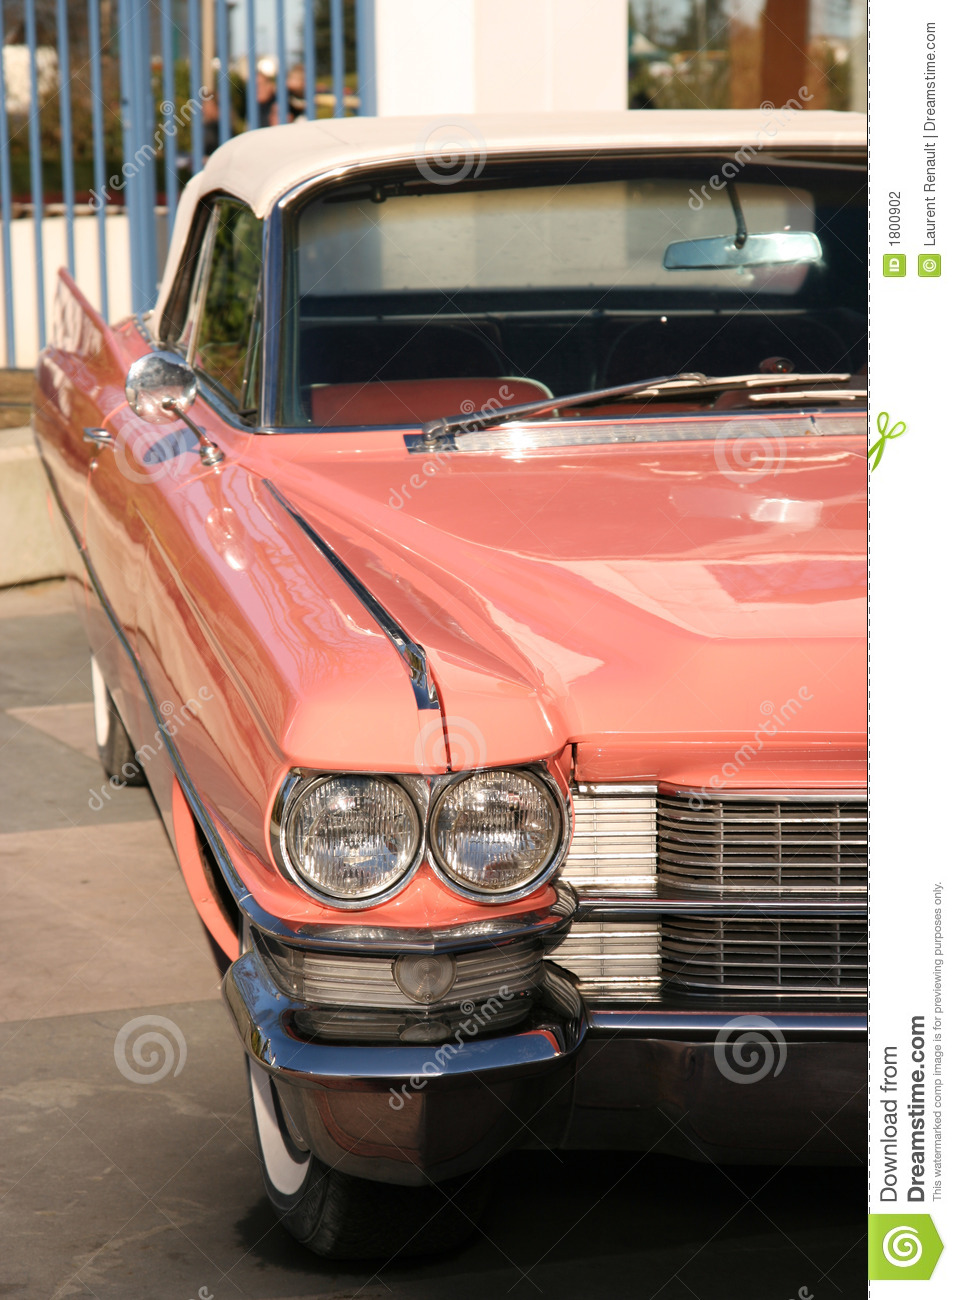 Old Fashioned Cars >> Vintage pink car stock photo. Image of bumper, retro, headlight - 1800902